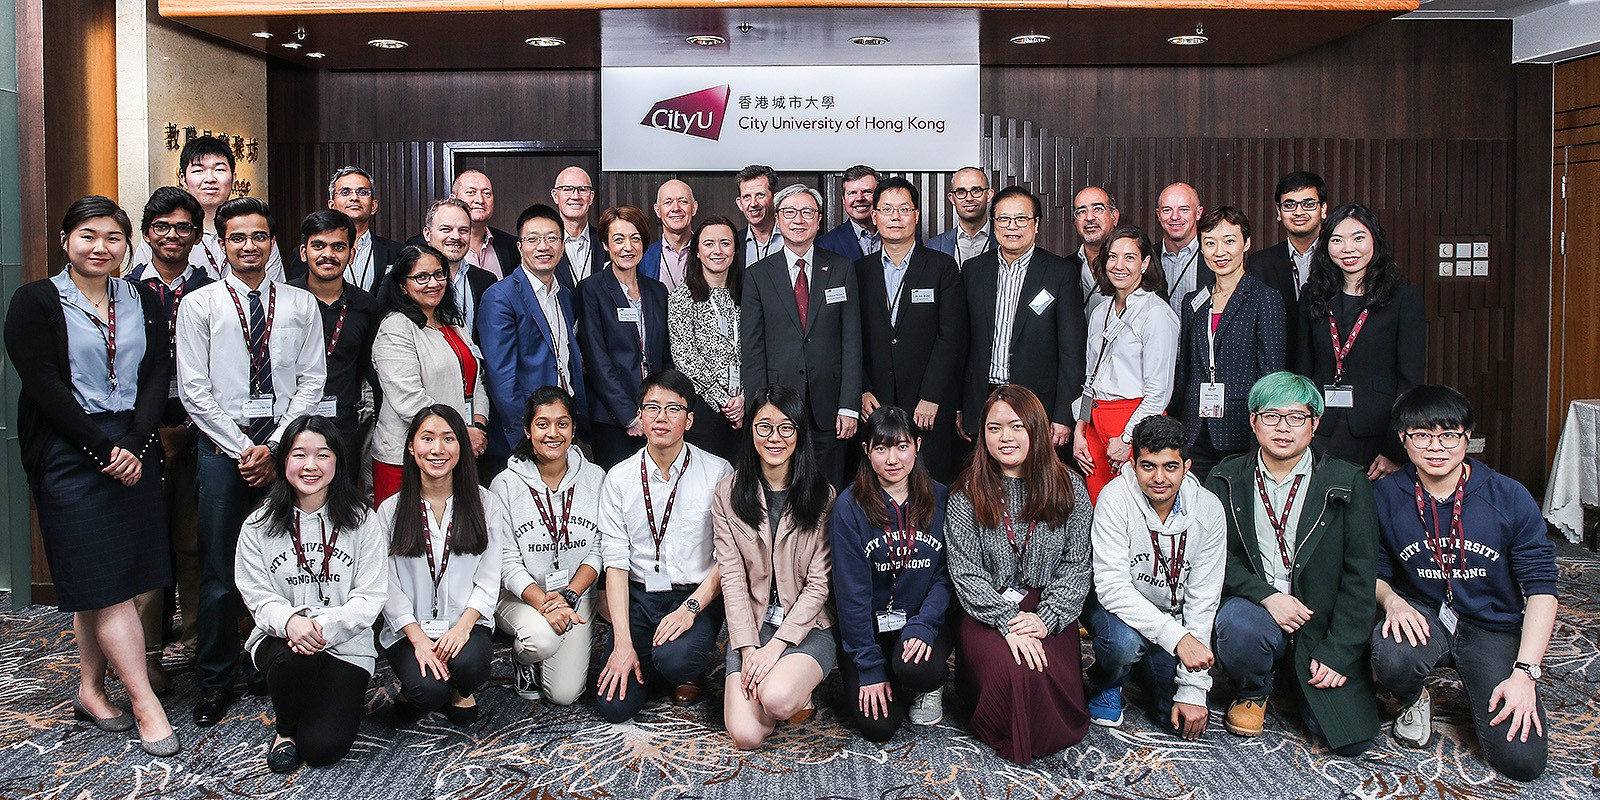 Professor Ip (2nd row, 6th from right) thanked the HSBC delegation for holding high level dialogues with CityU students and alumni.